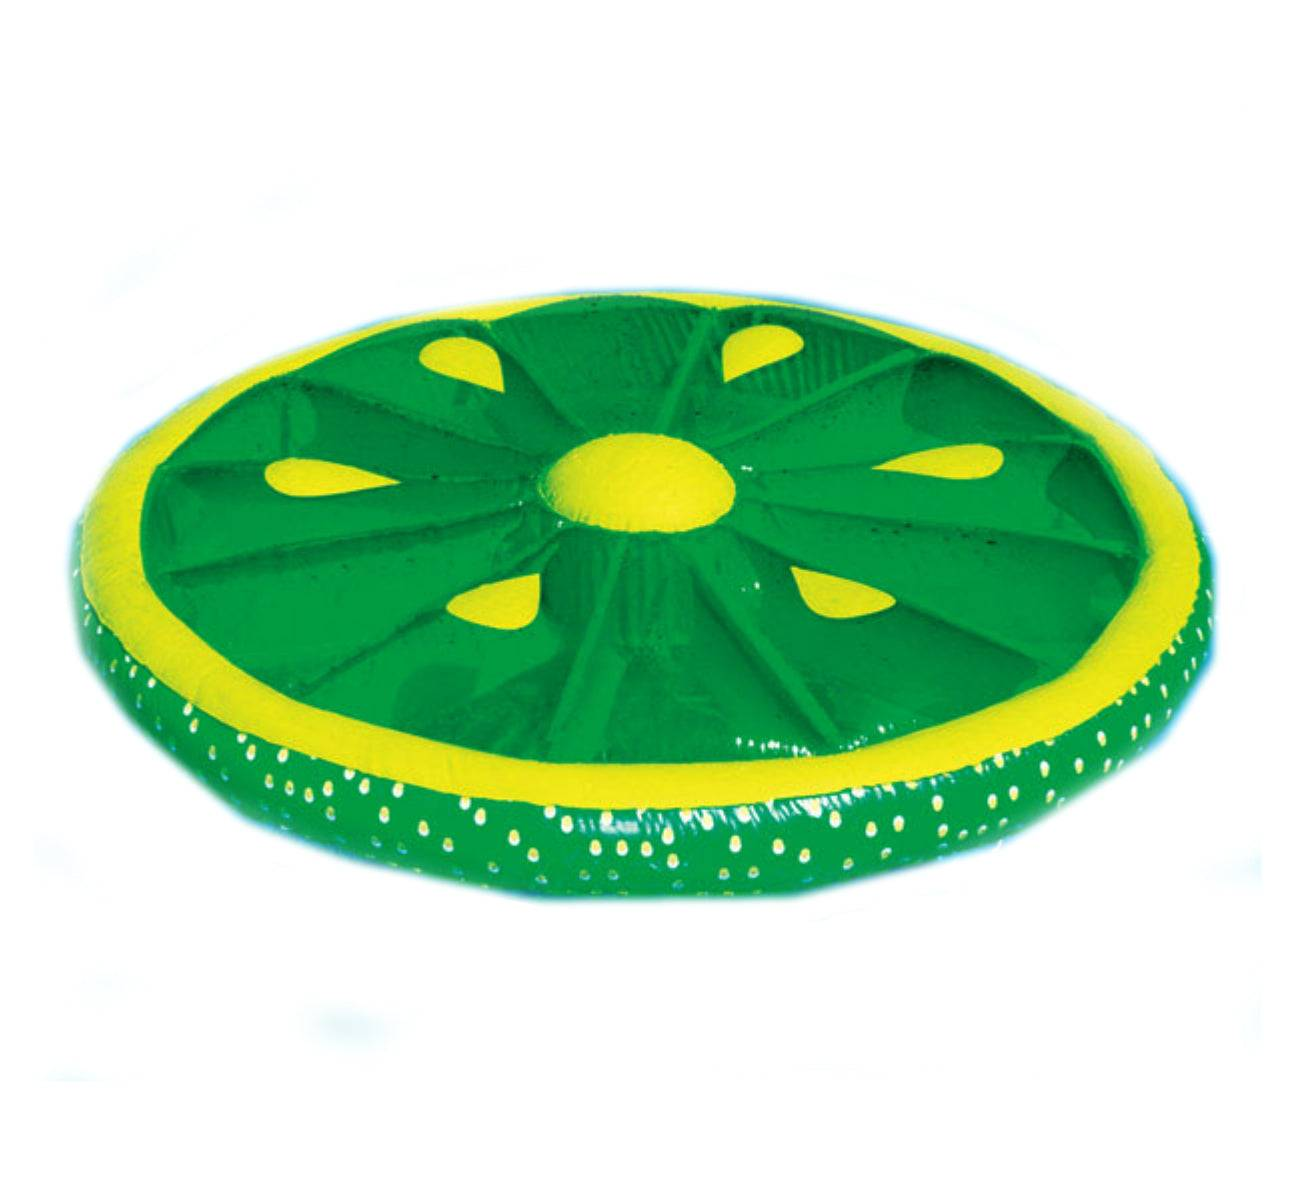 Swimline 9054 Inflatable Fruit Slice Swimming Pool Toy, Assorted Colors